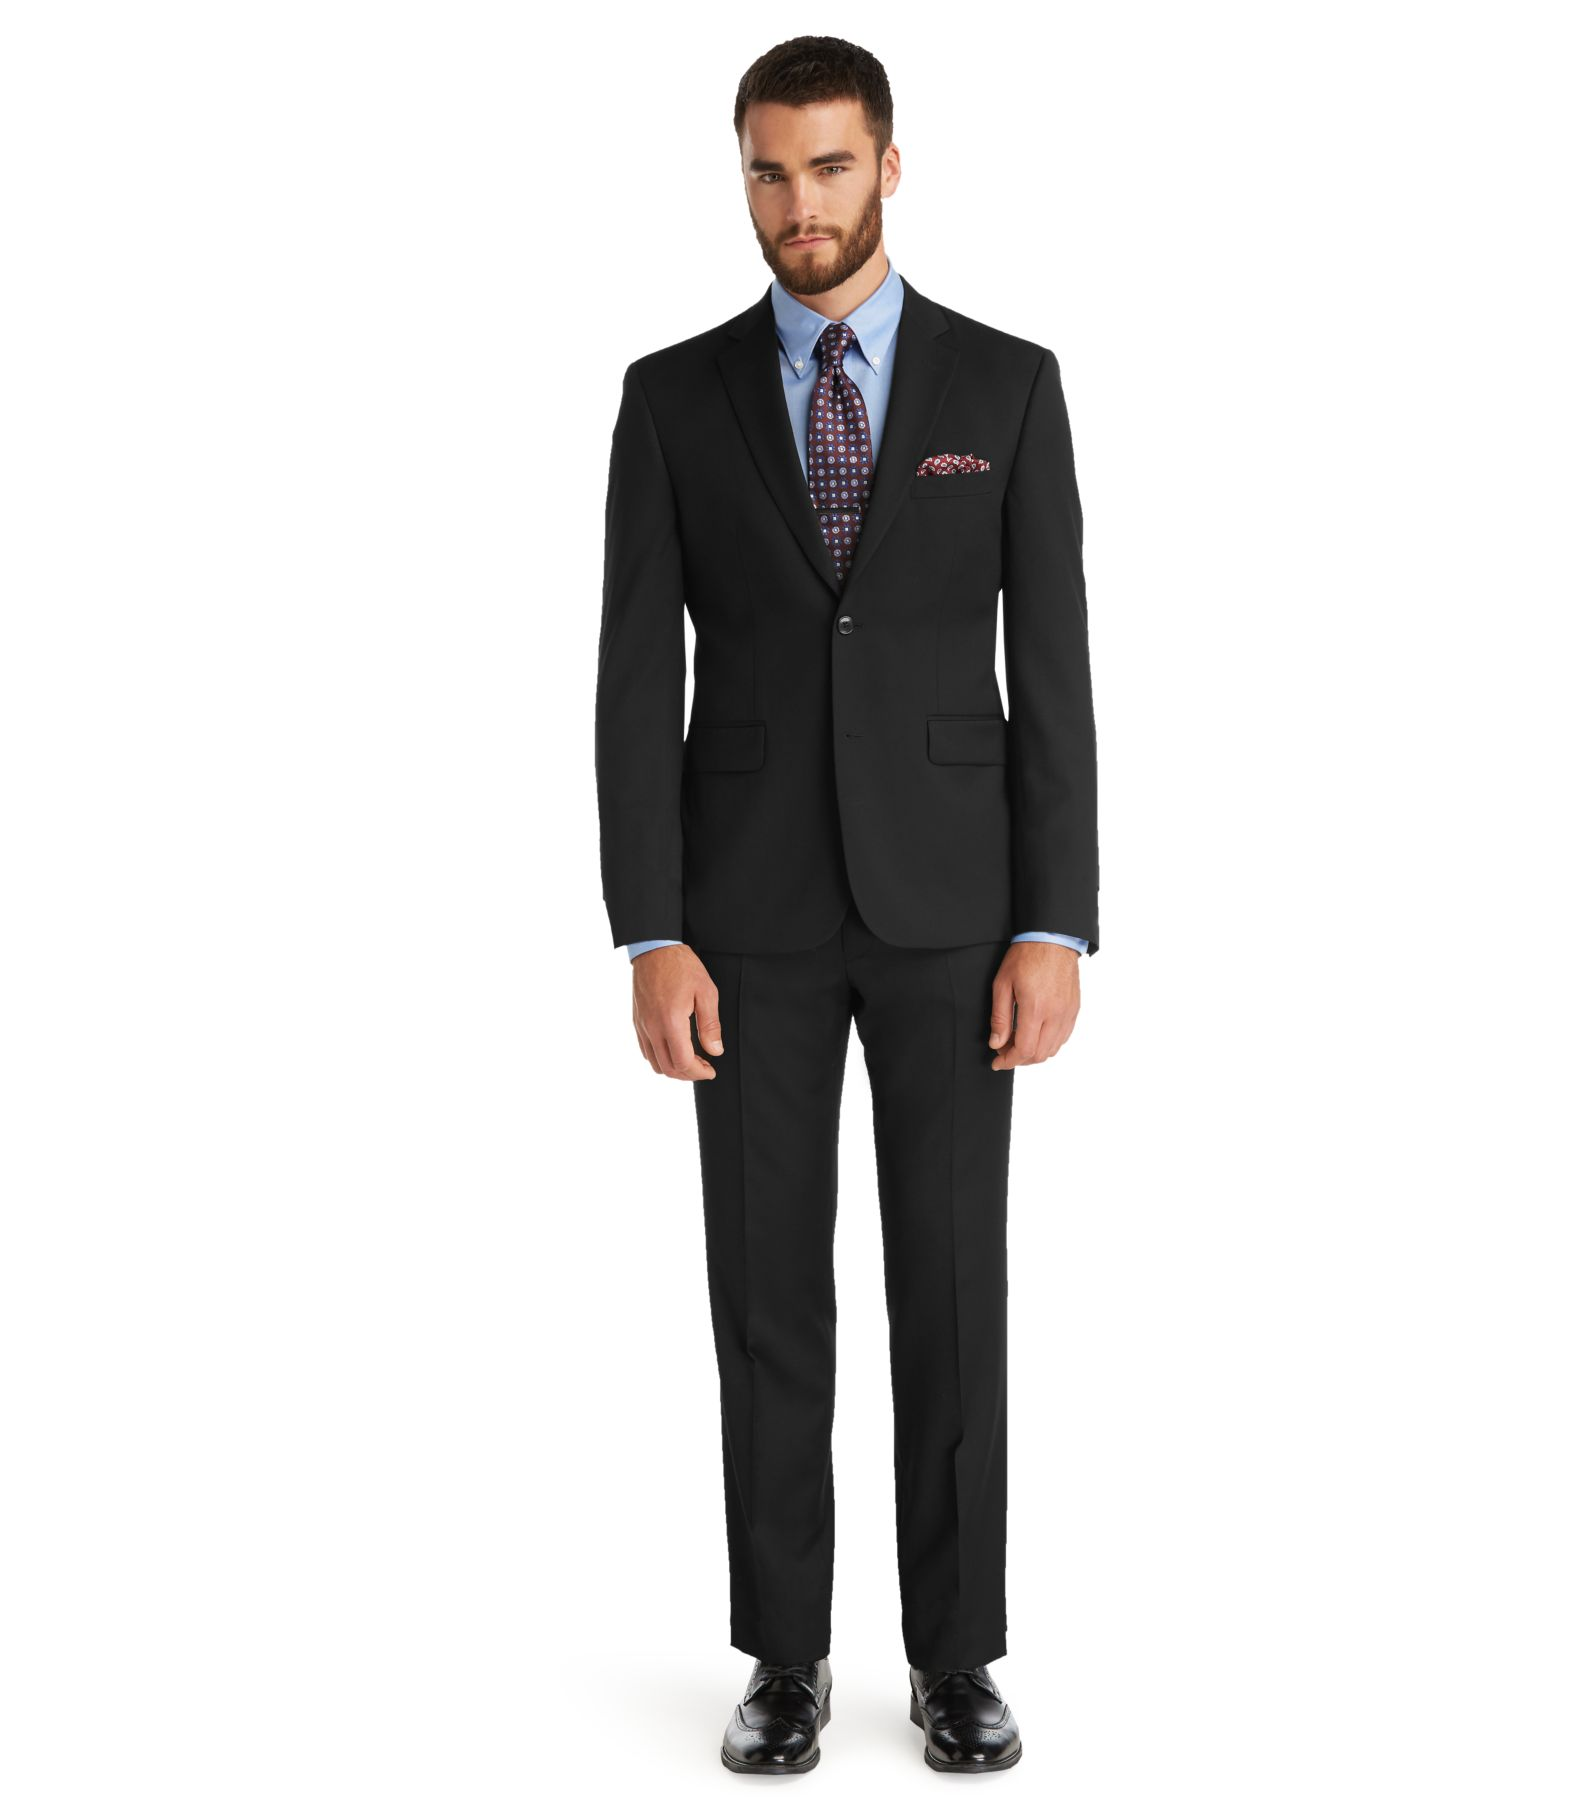 Cheap suit stores near me dress yy for Jos a bank tailored fit vs slim fit shirts